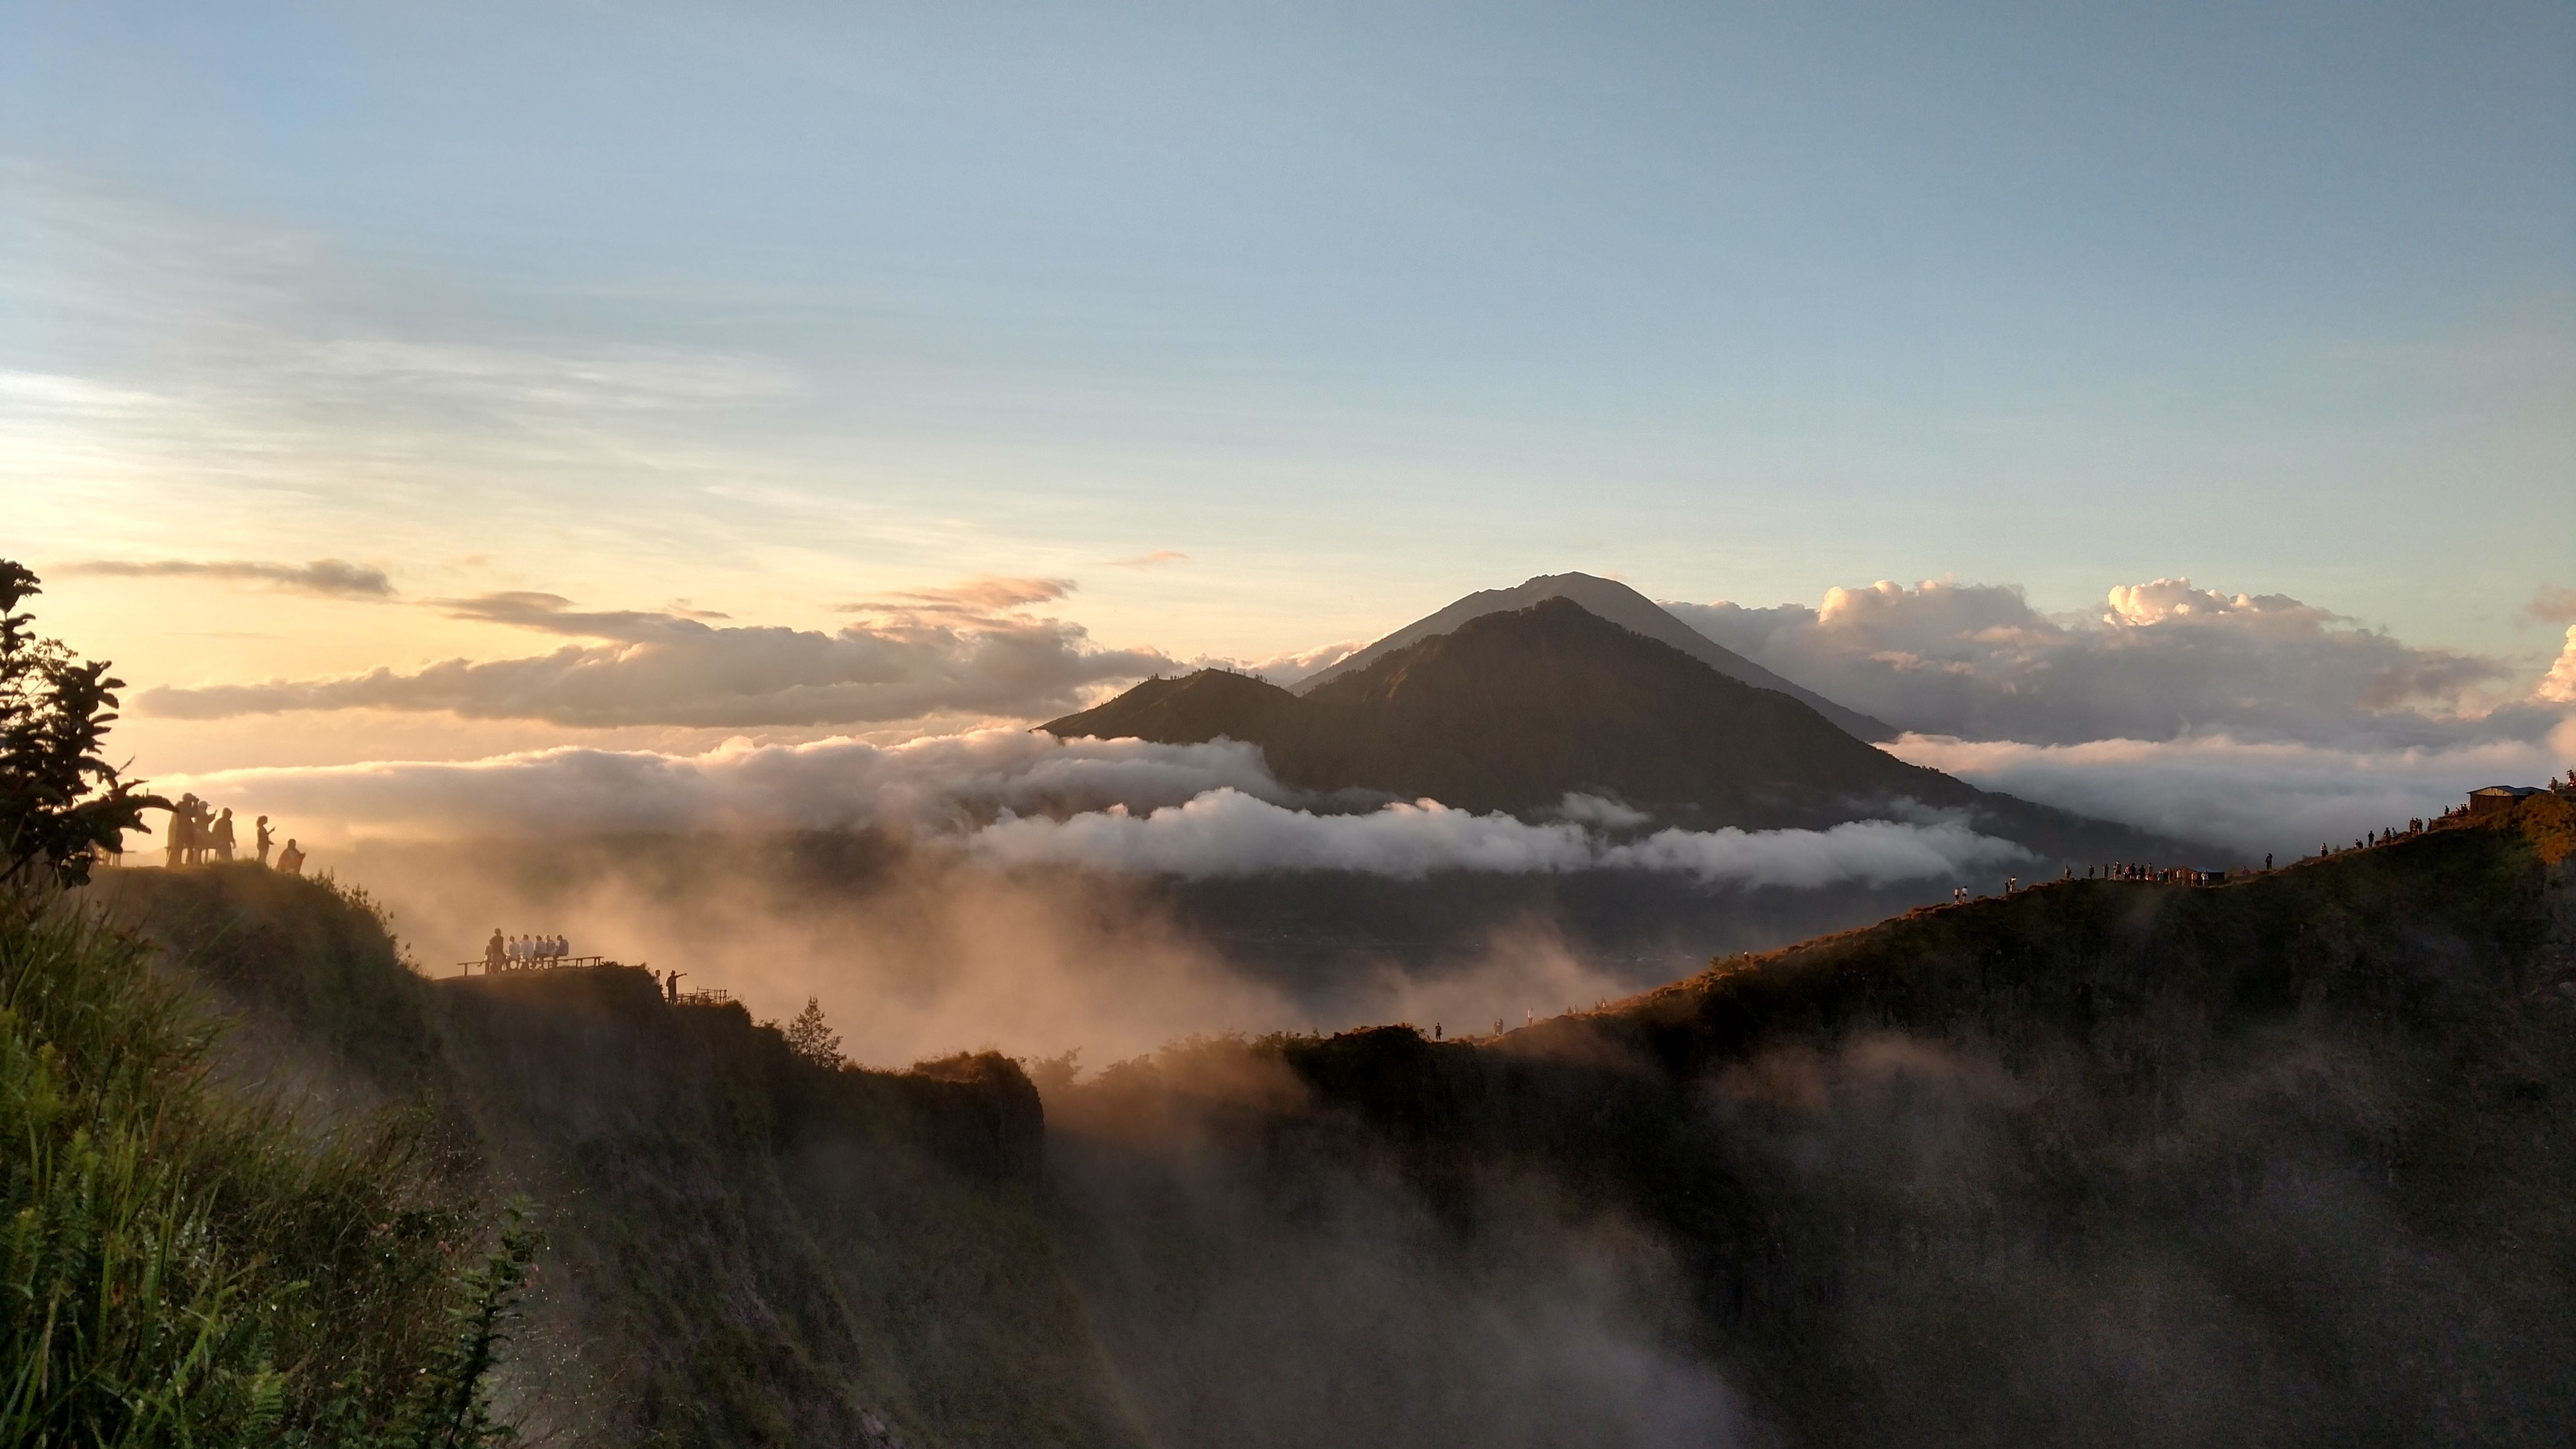 A picture of a Balinese volcano at sunrise